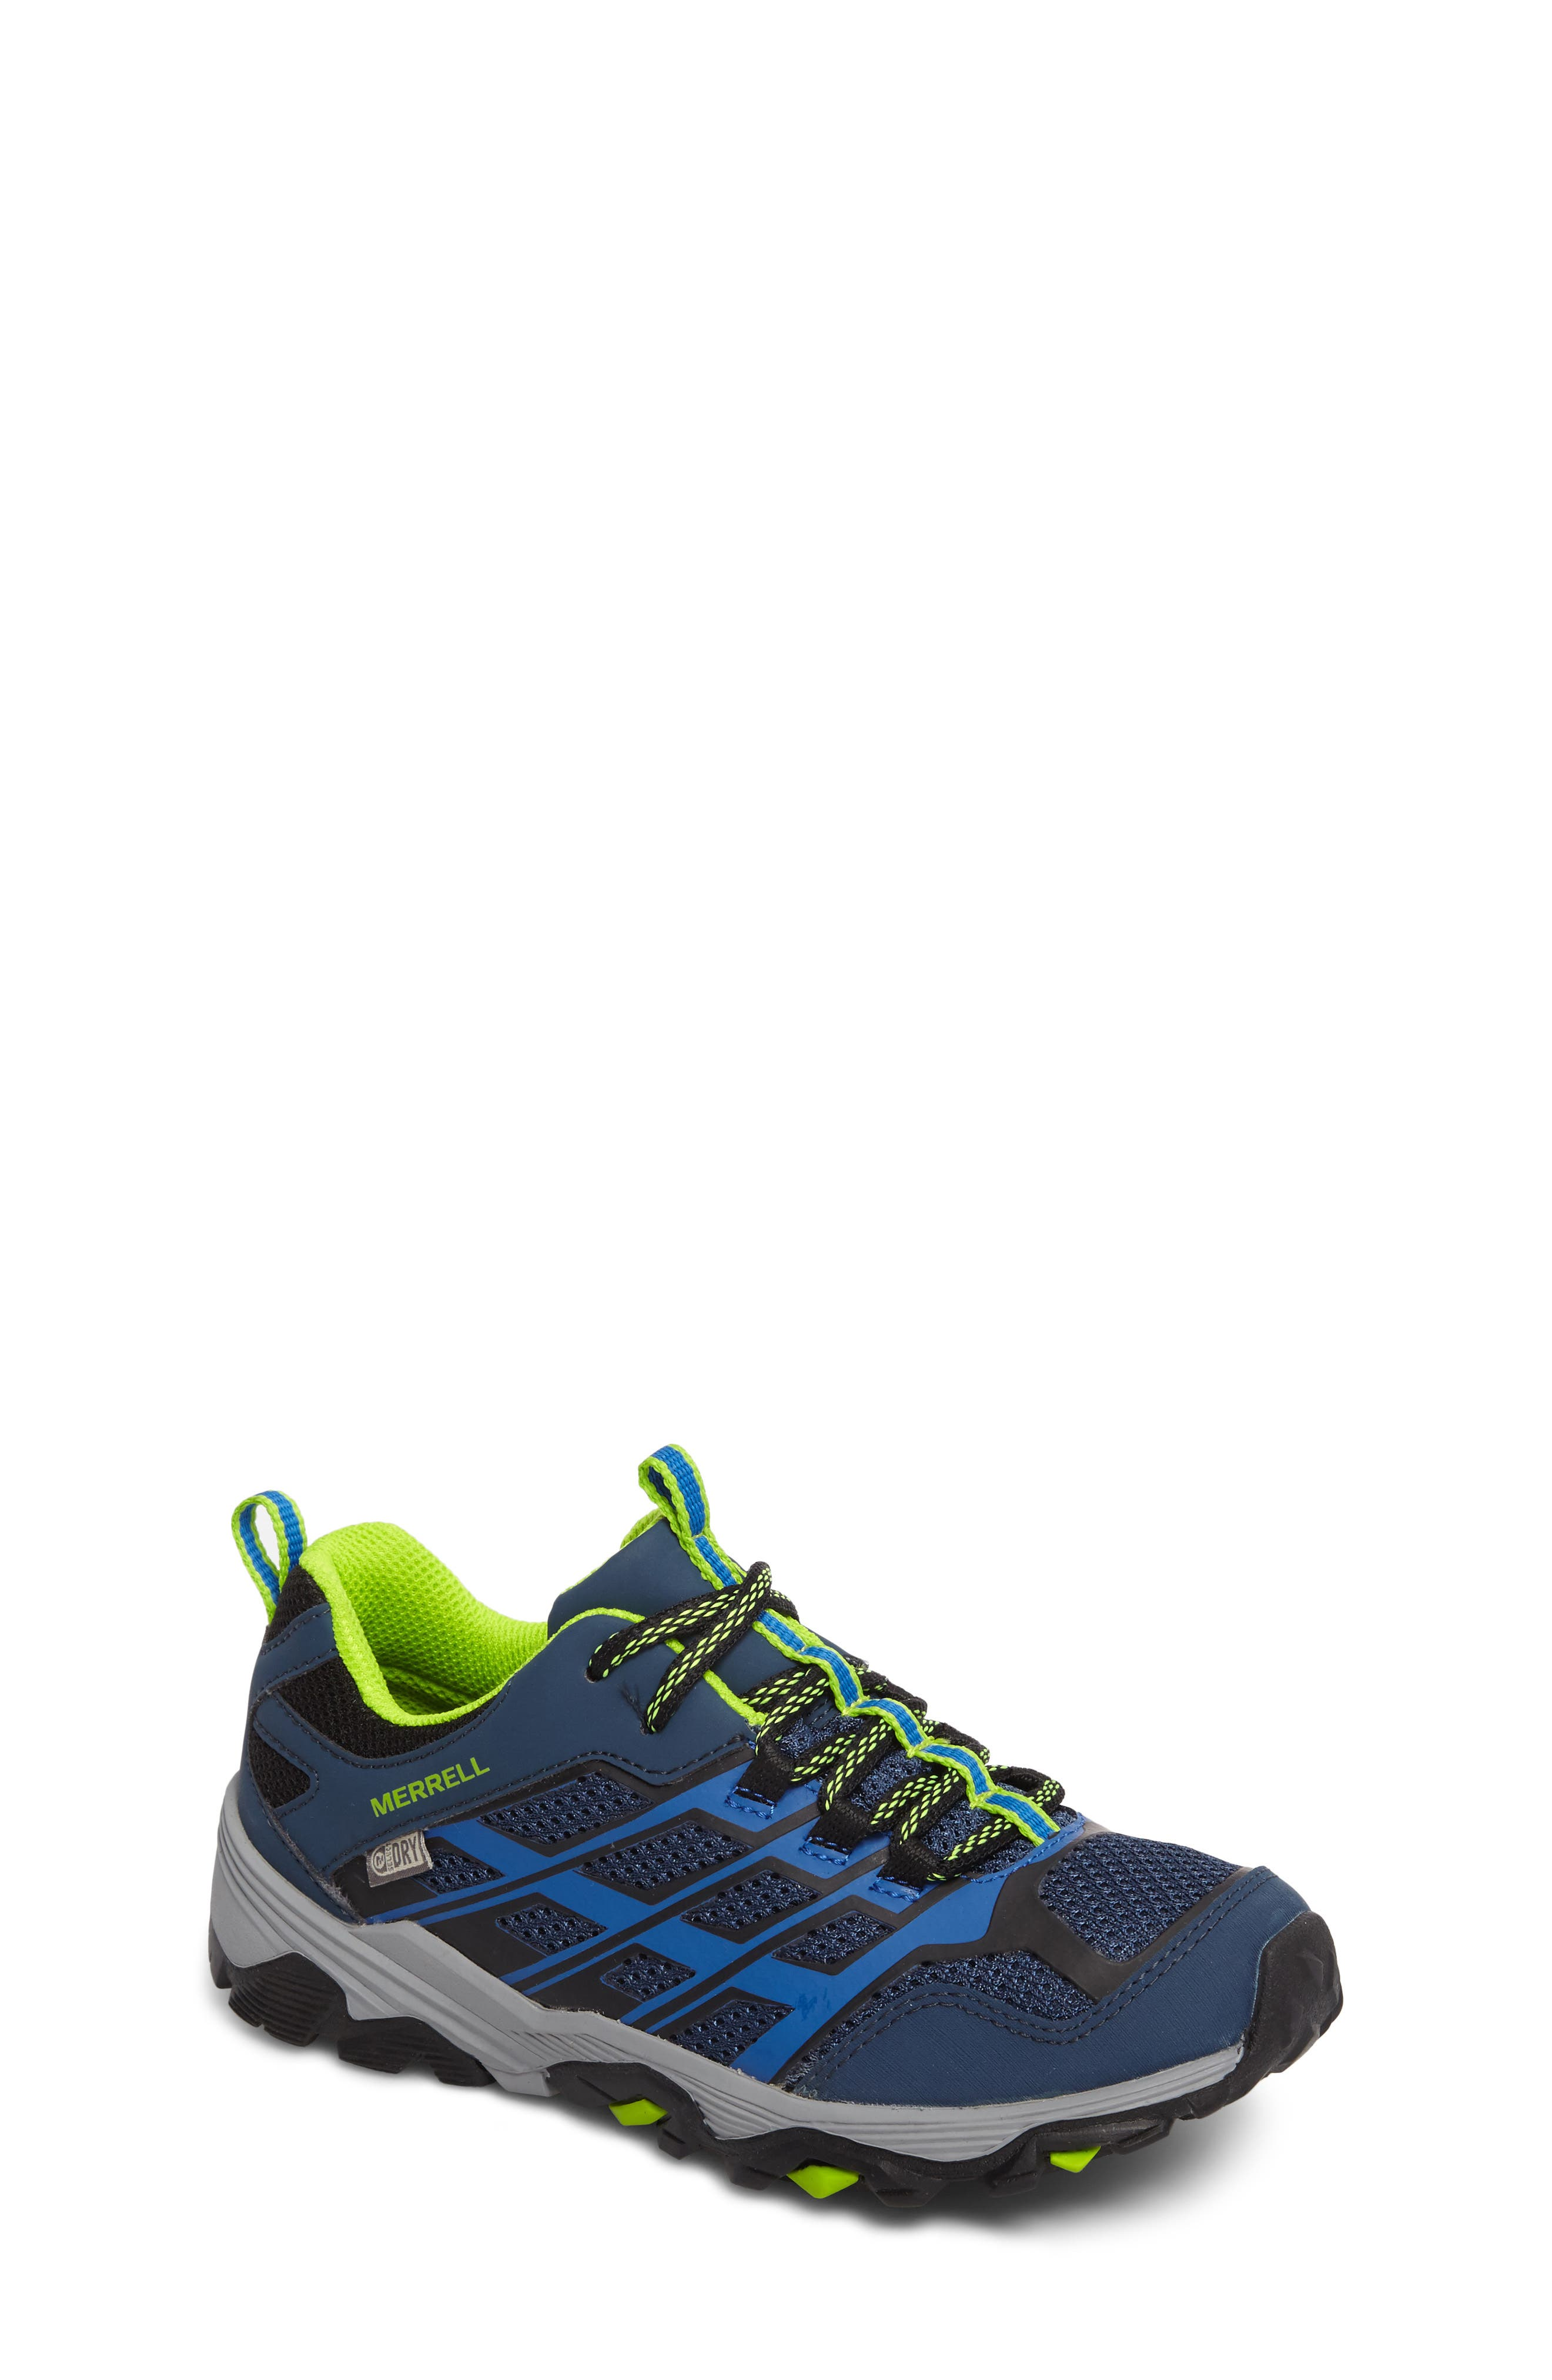 Moab FST Polar Low Waterproof Sneaker,                         Main,                         color, Navy/ Blue